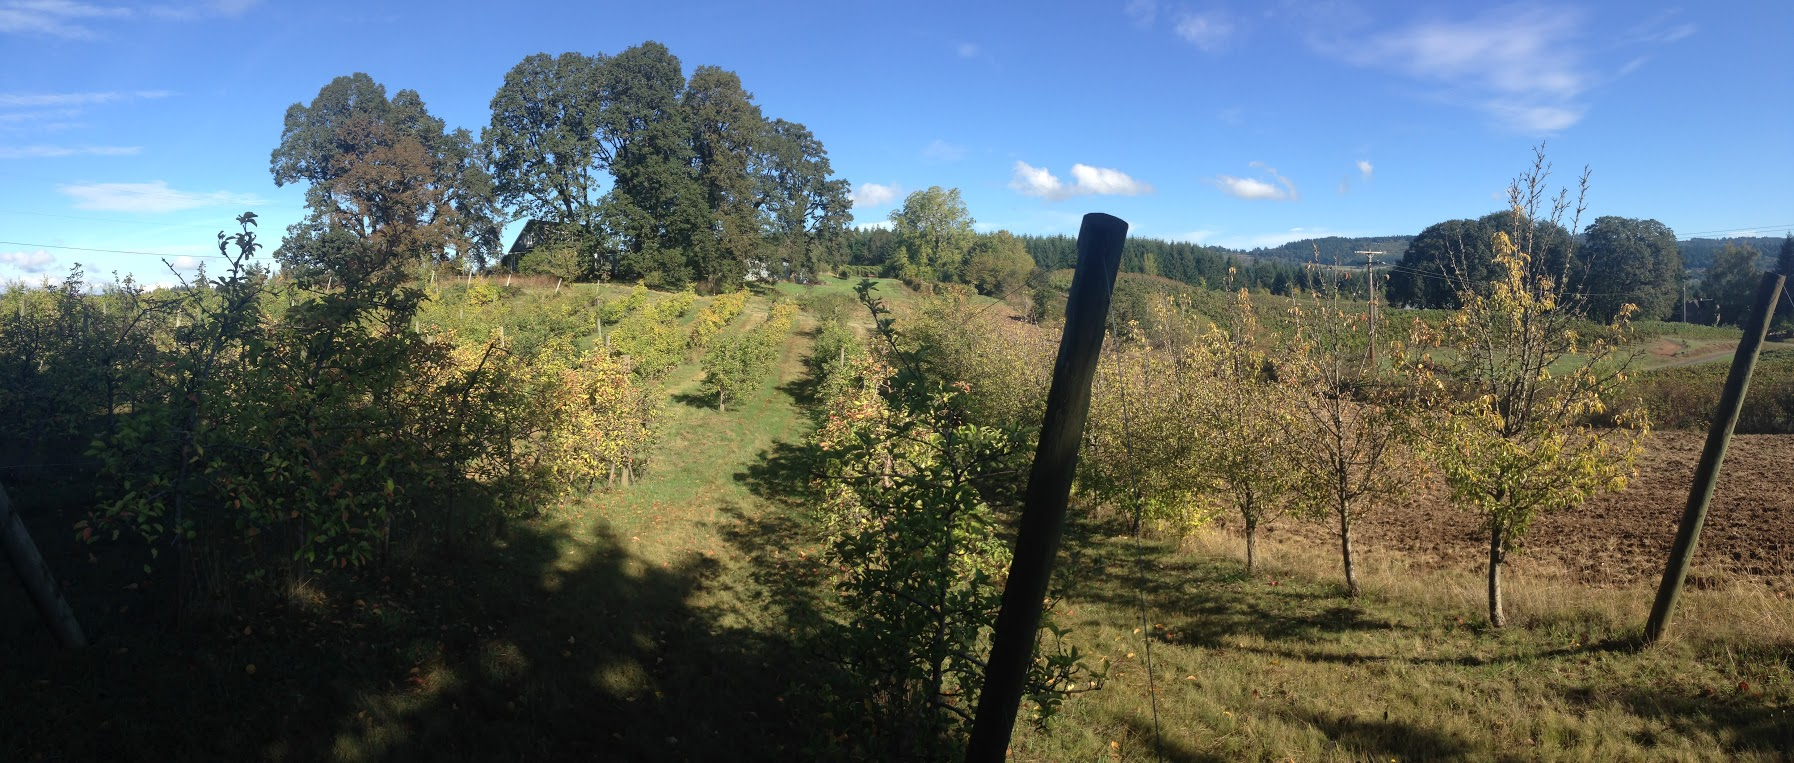 The heirloom apple orchard outside of Newberg, Oregon, where Cider Riot gets apples from.